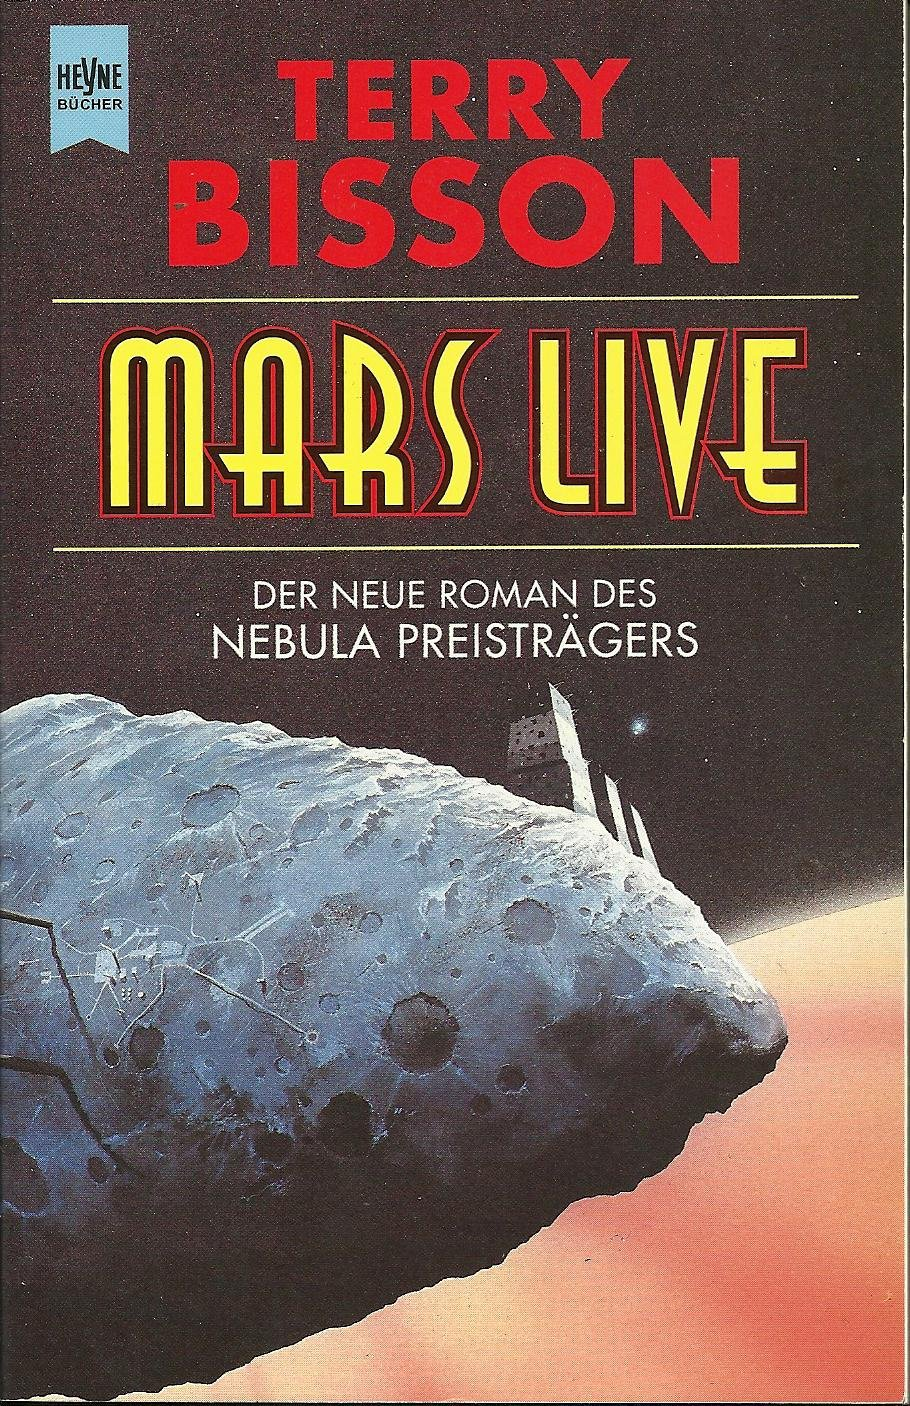 Terry Bisson - Mars Live